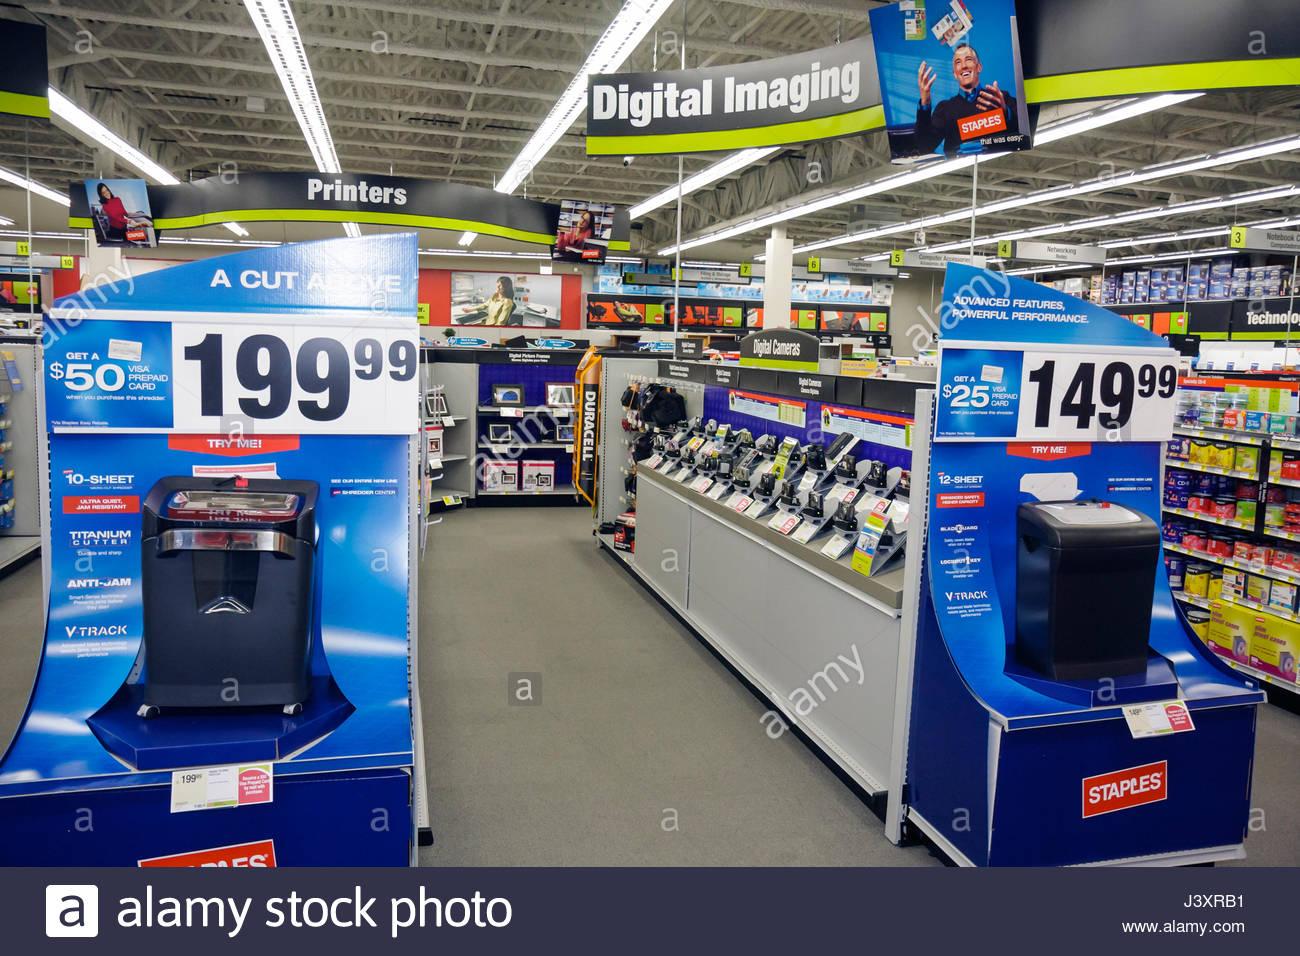 office merchandise. Miami Florida Staples Office Supply Products Store Retail Business Chain Merchandise Display Printers Shredder Price Pro L